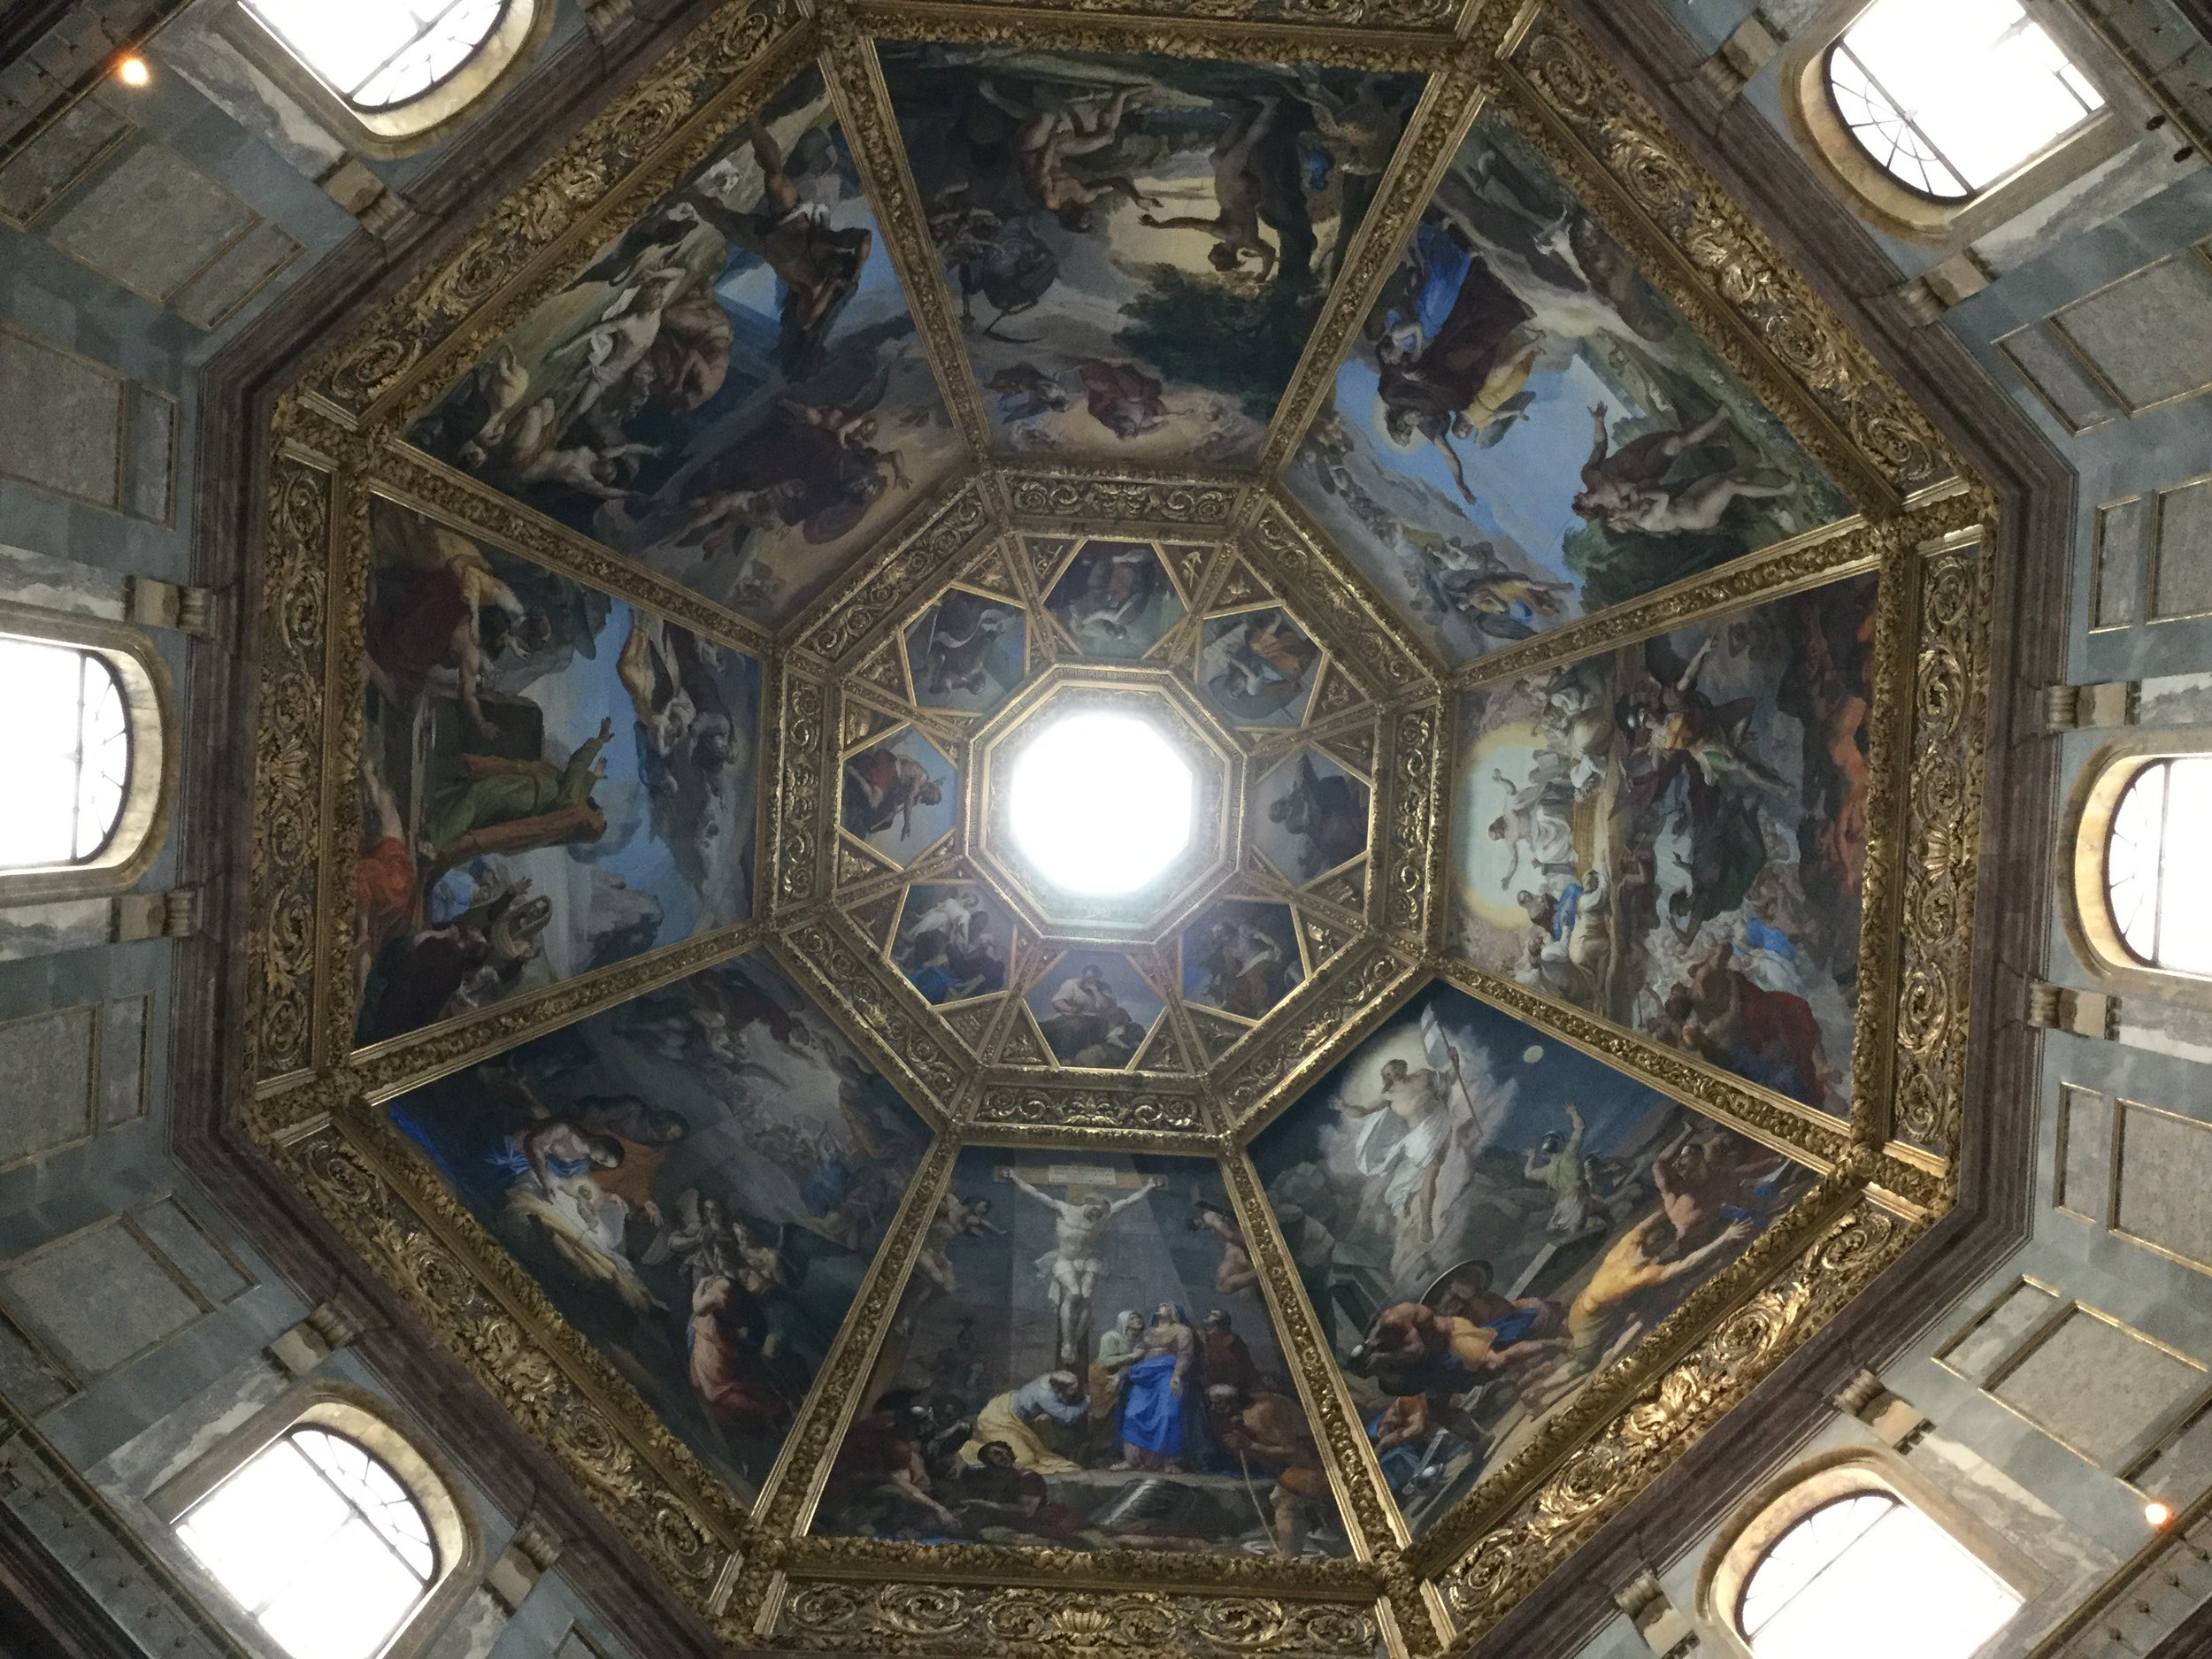 Another dome - the cupola of the Medici Chapel.